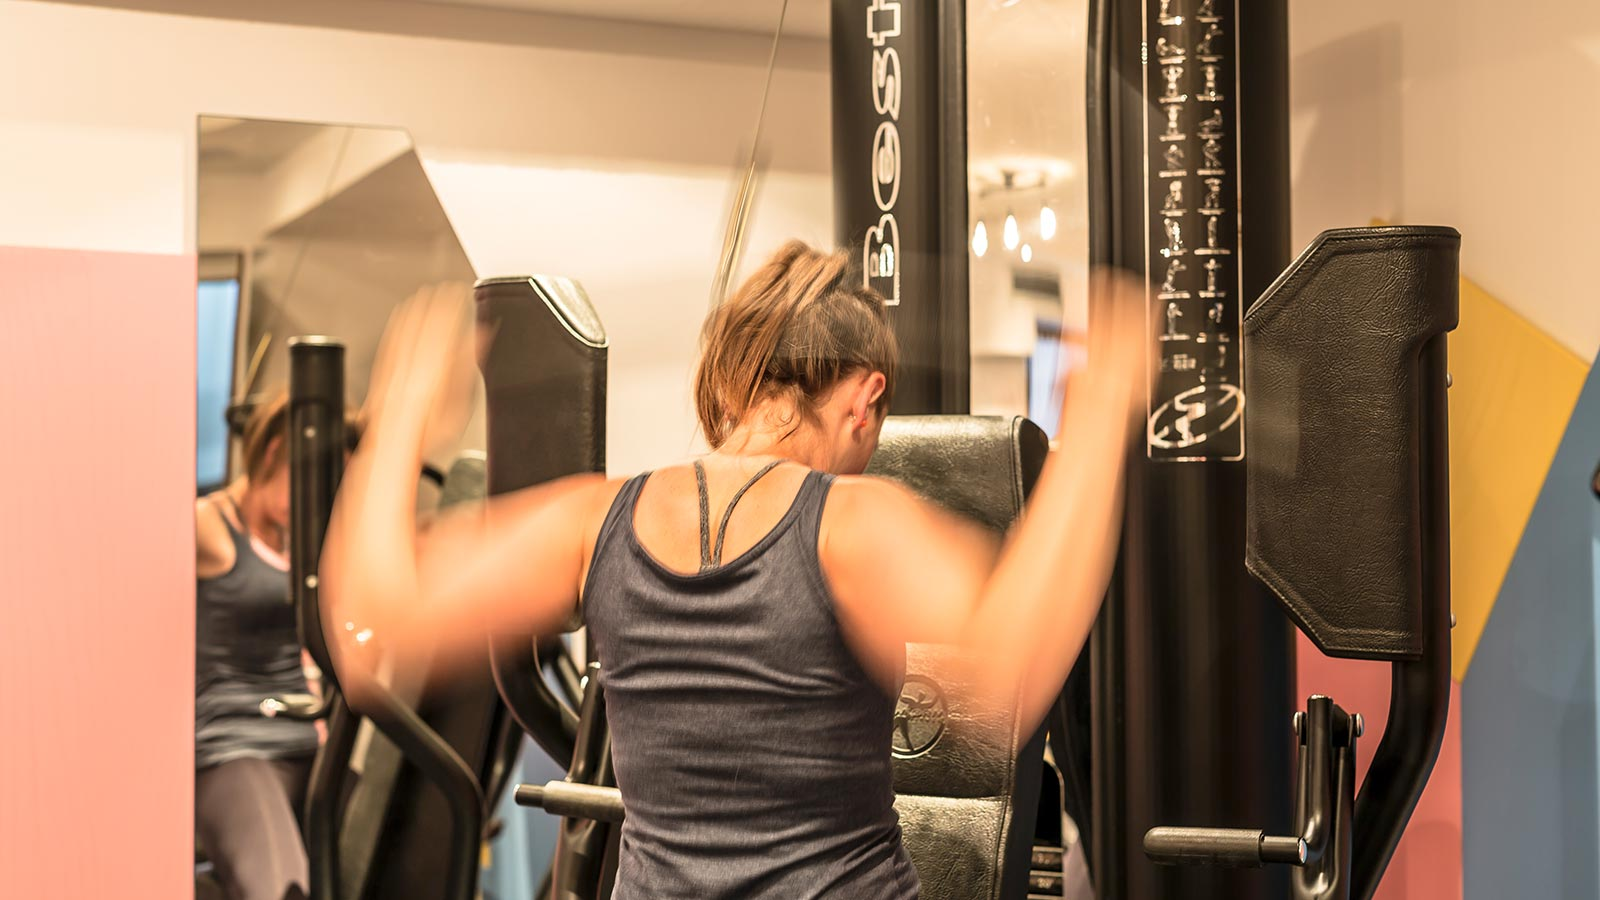 A girl is working out at the gym of Hotel Maibad in Vipiteno